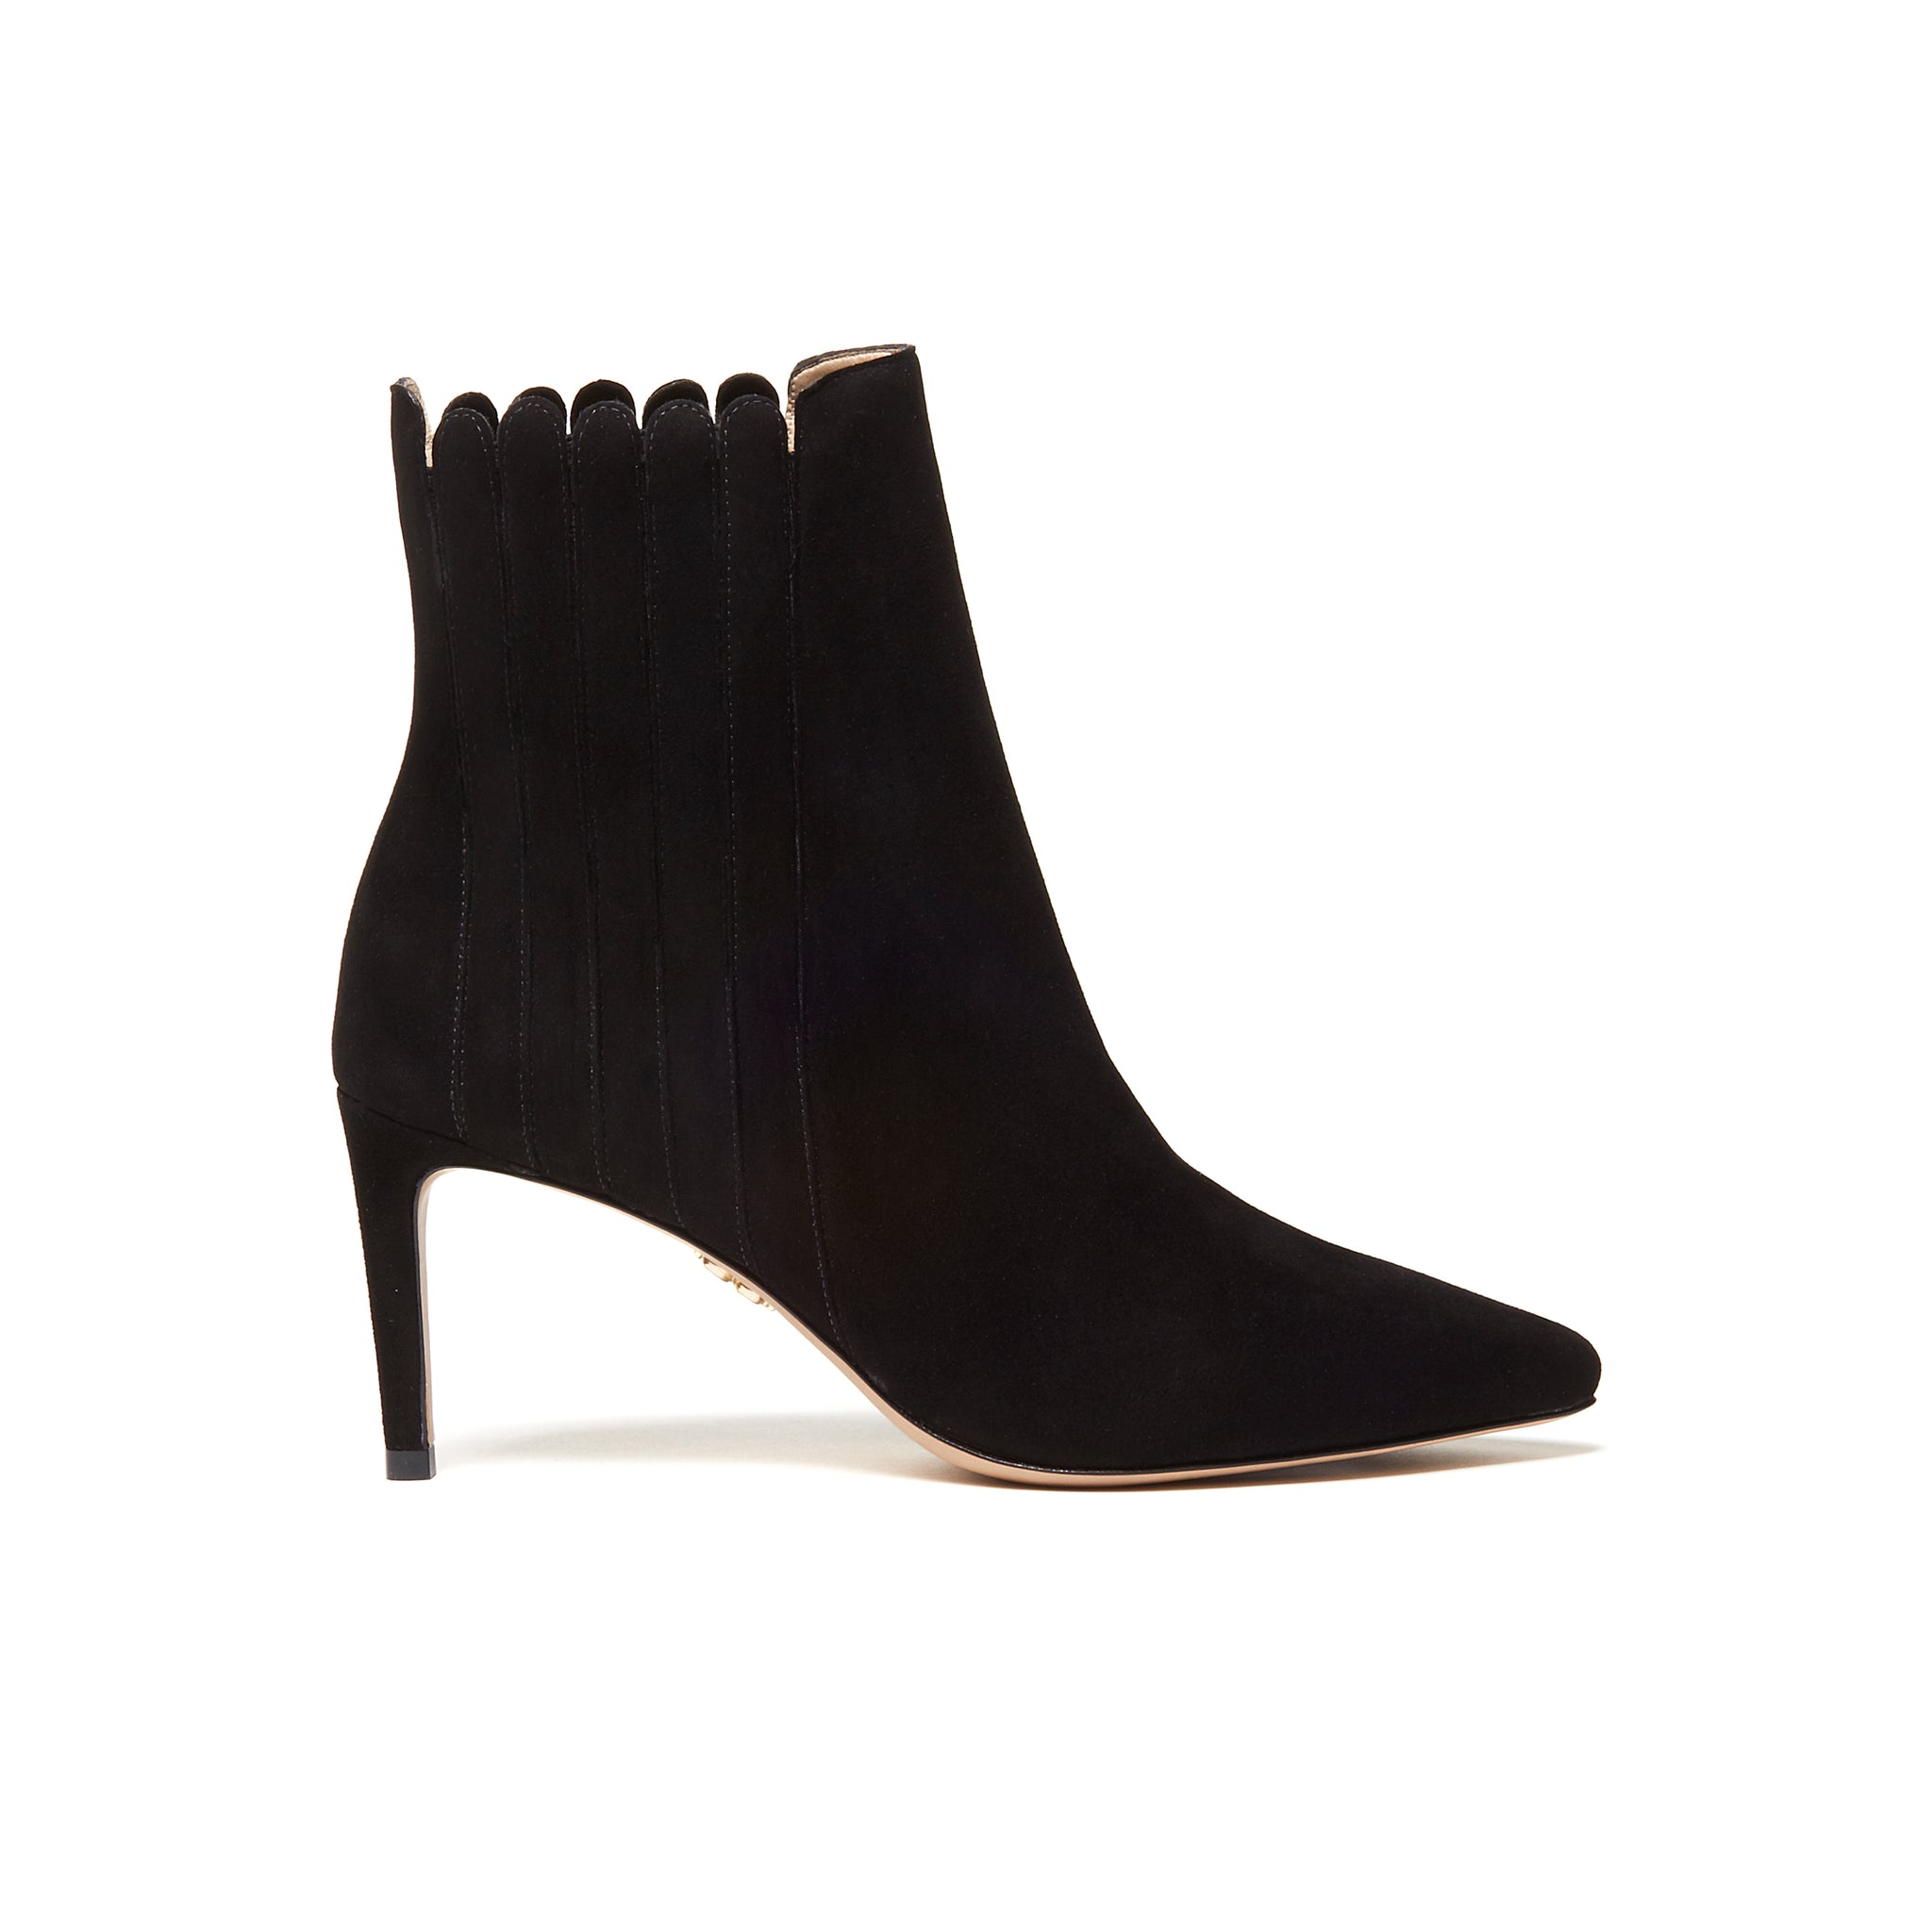 ANAIS Ankle Boots - Black Suede (76mm)